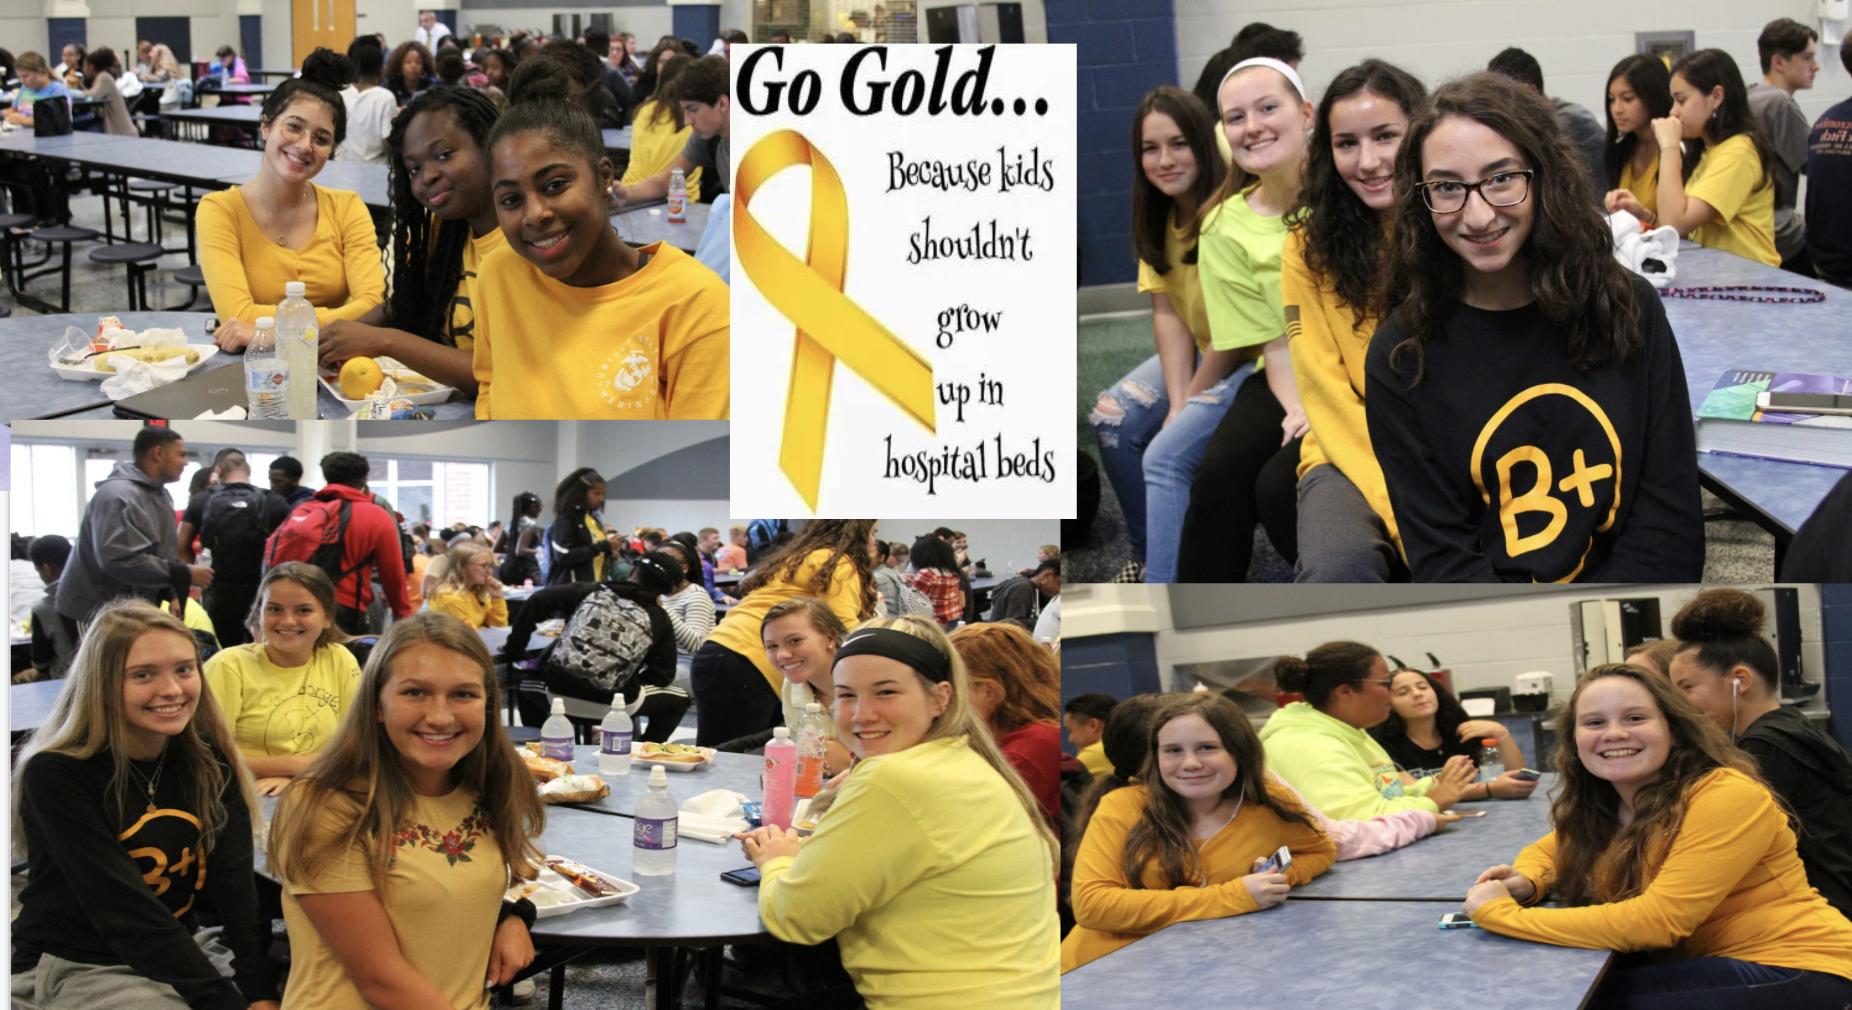 Go Gold Day